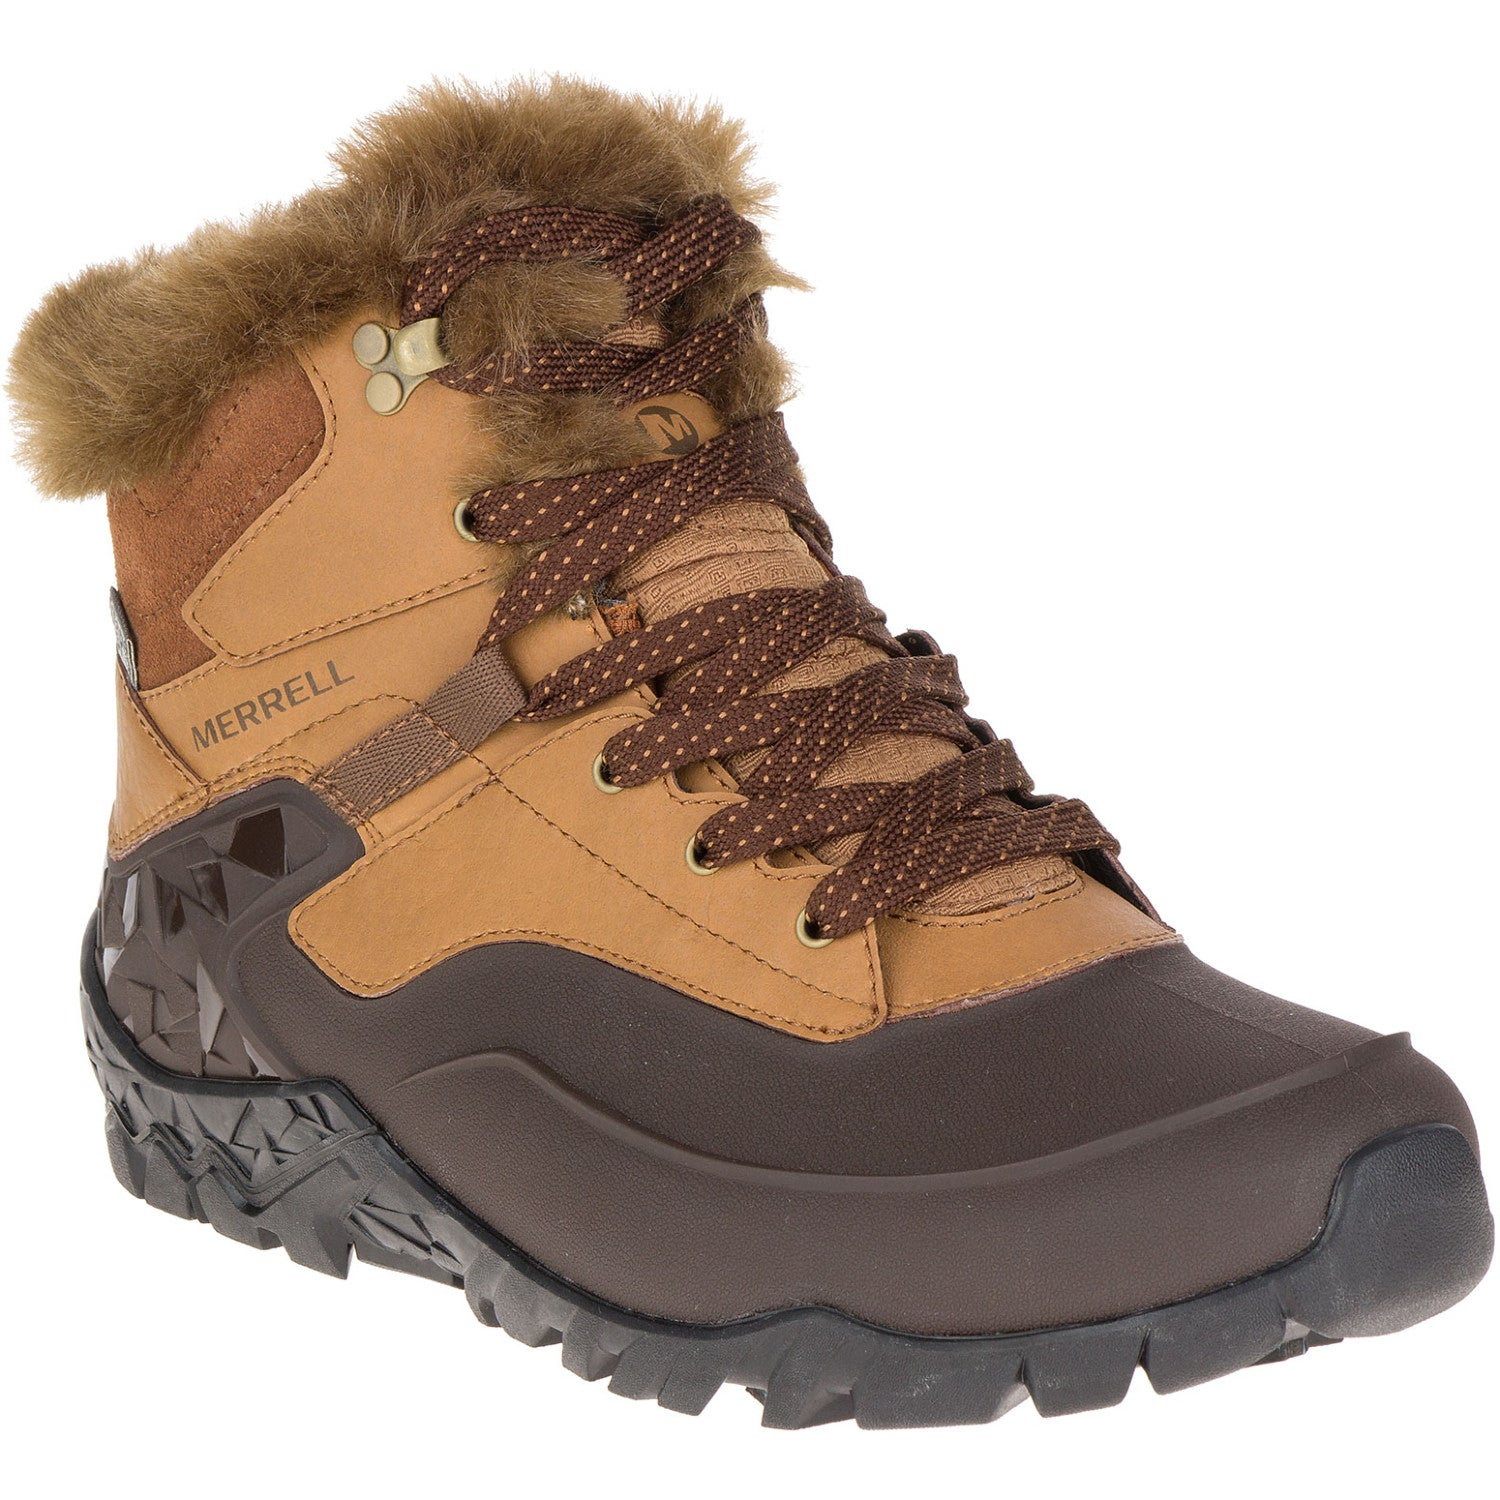 01f24c4efb Merrell Aurora 6 Ice+ Ladies Boots from Fitness Footwear